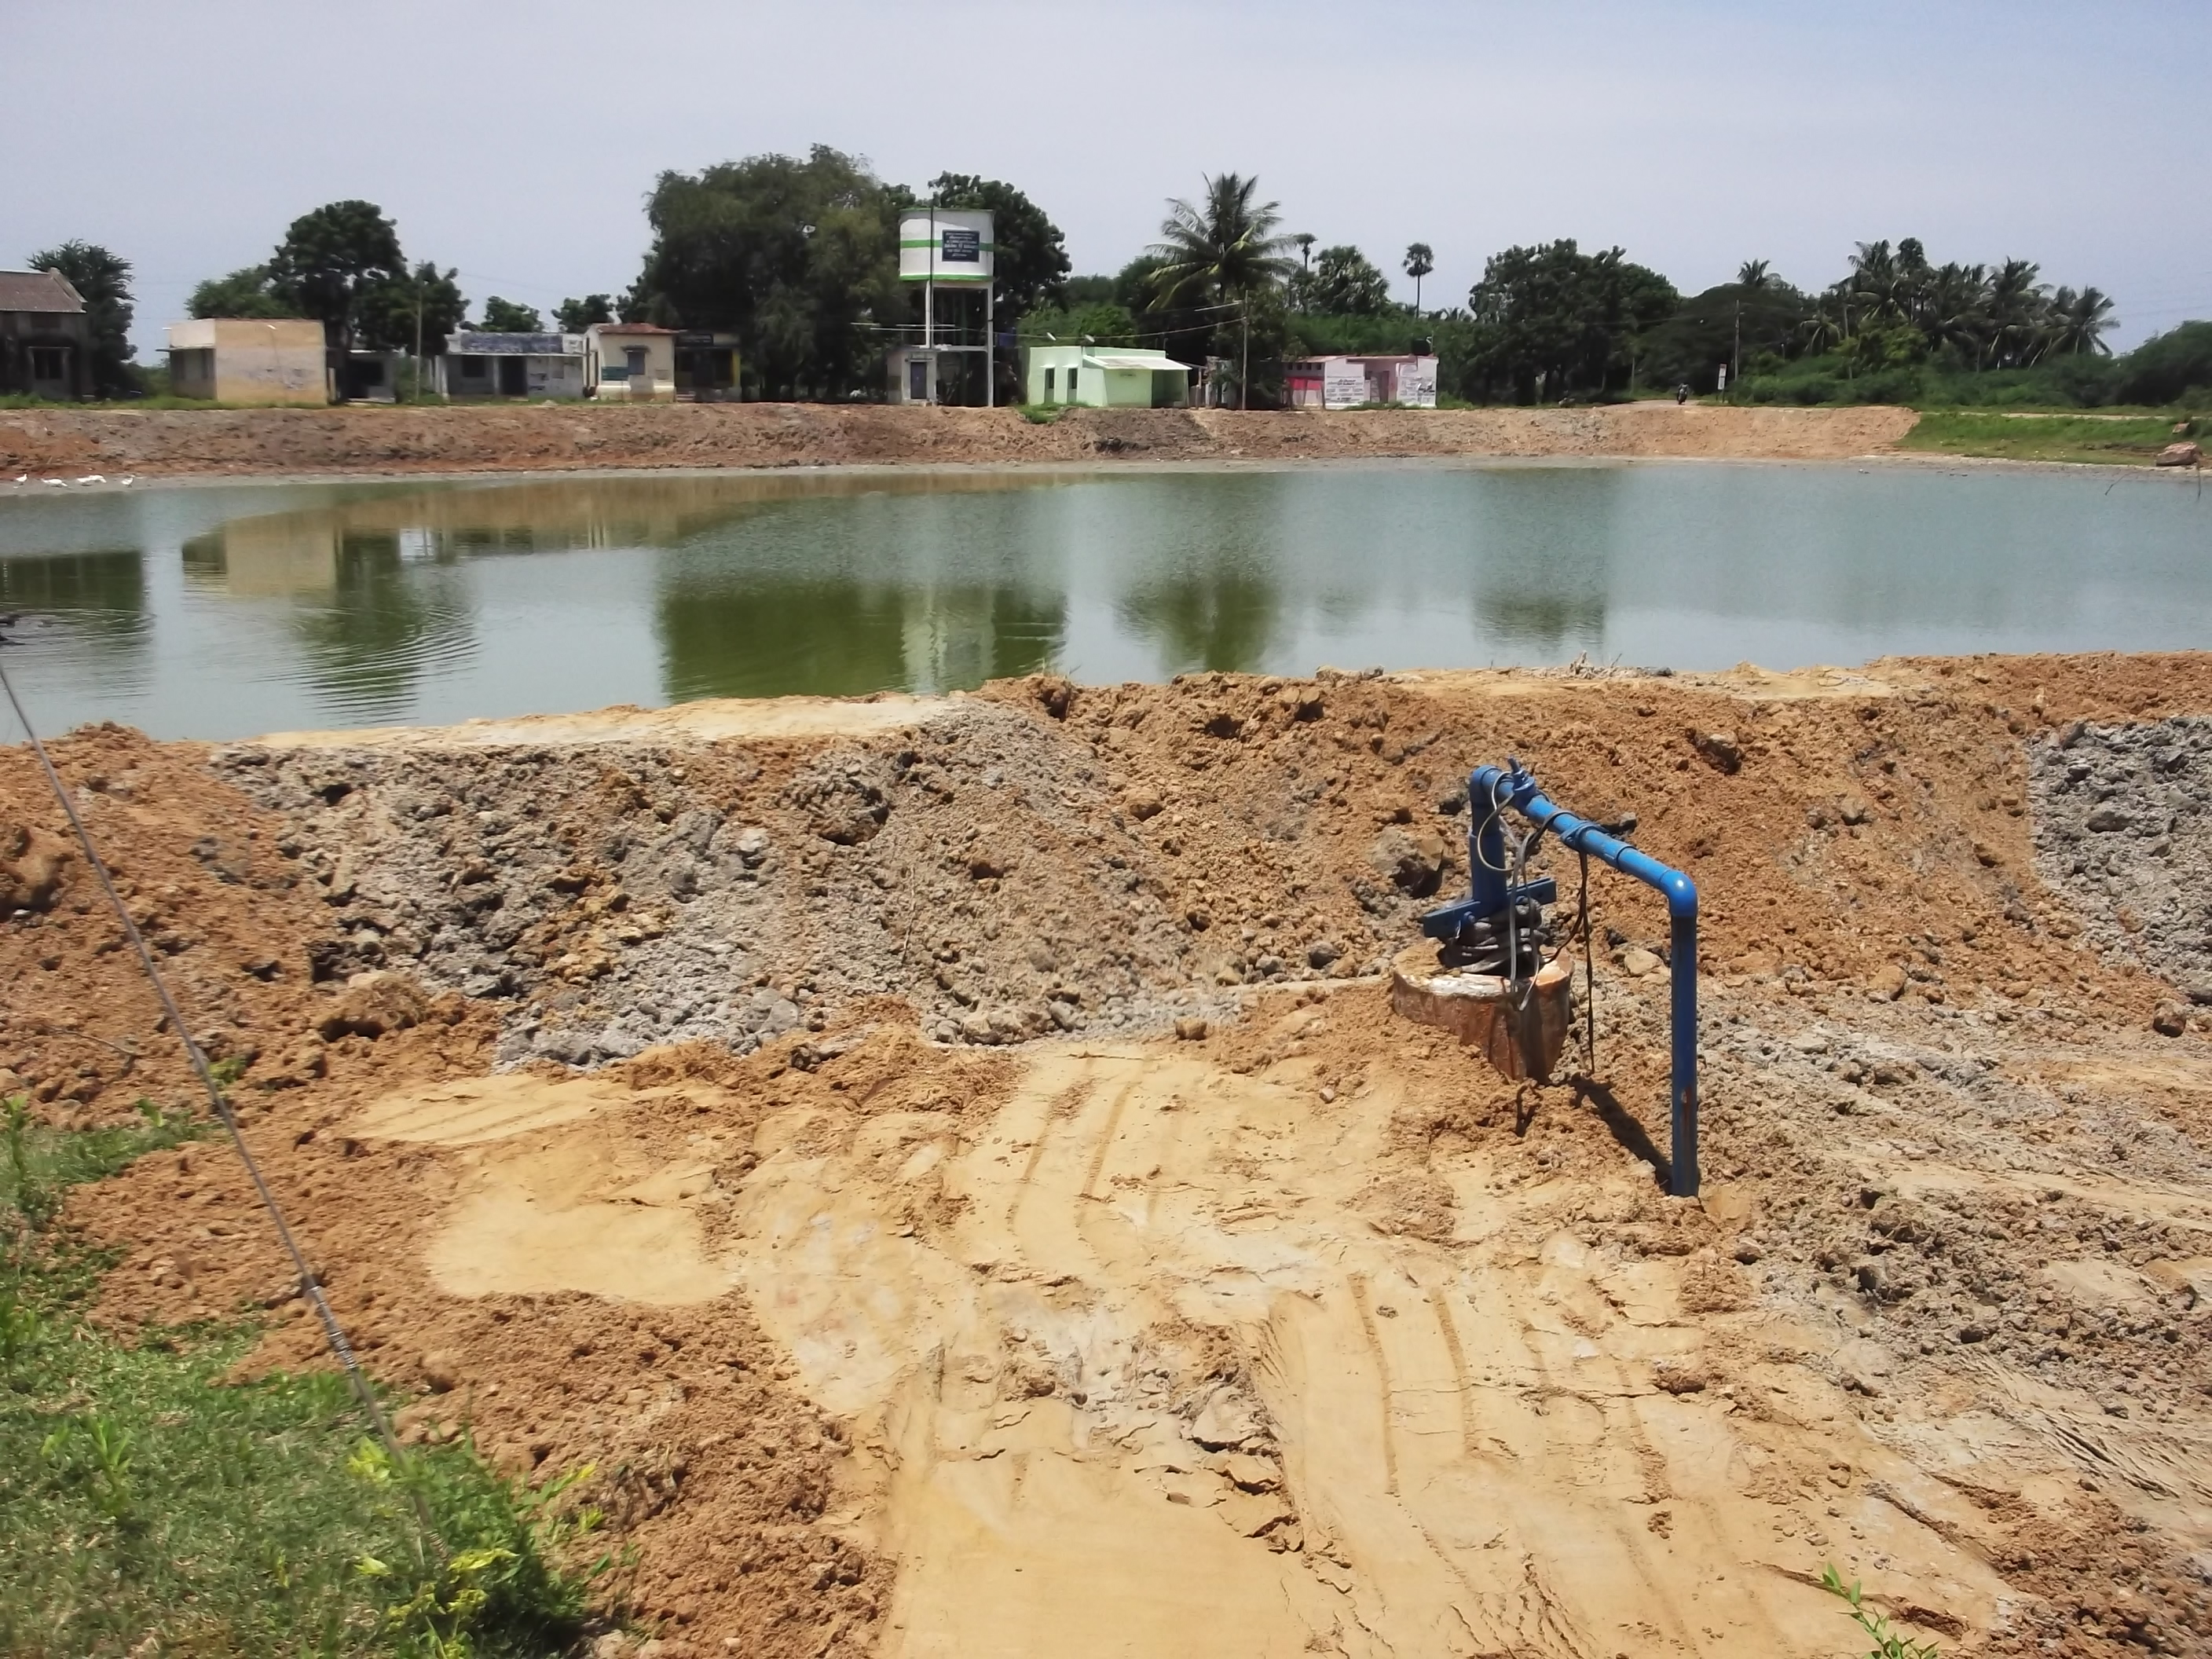 Pond renovation bund and shutter construction improving for Pond building supplies